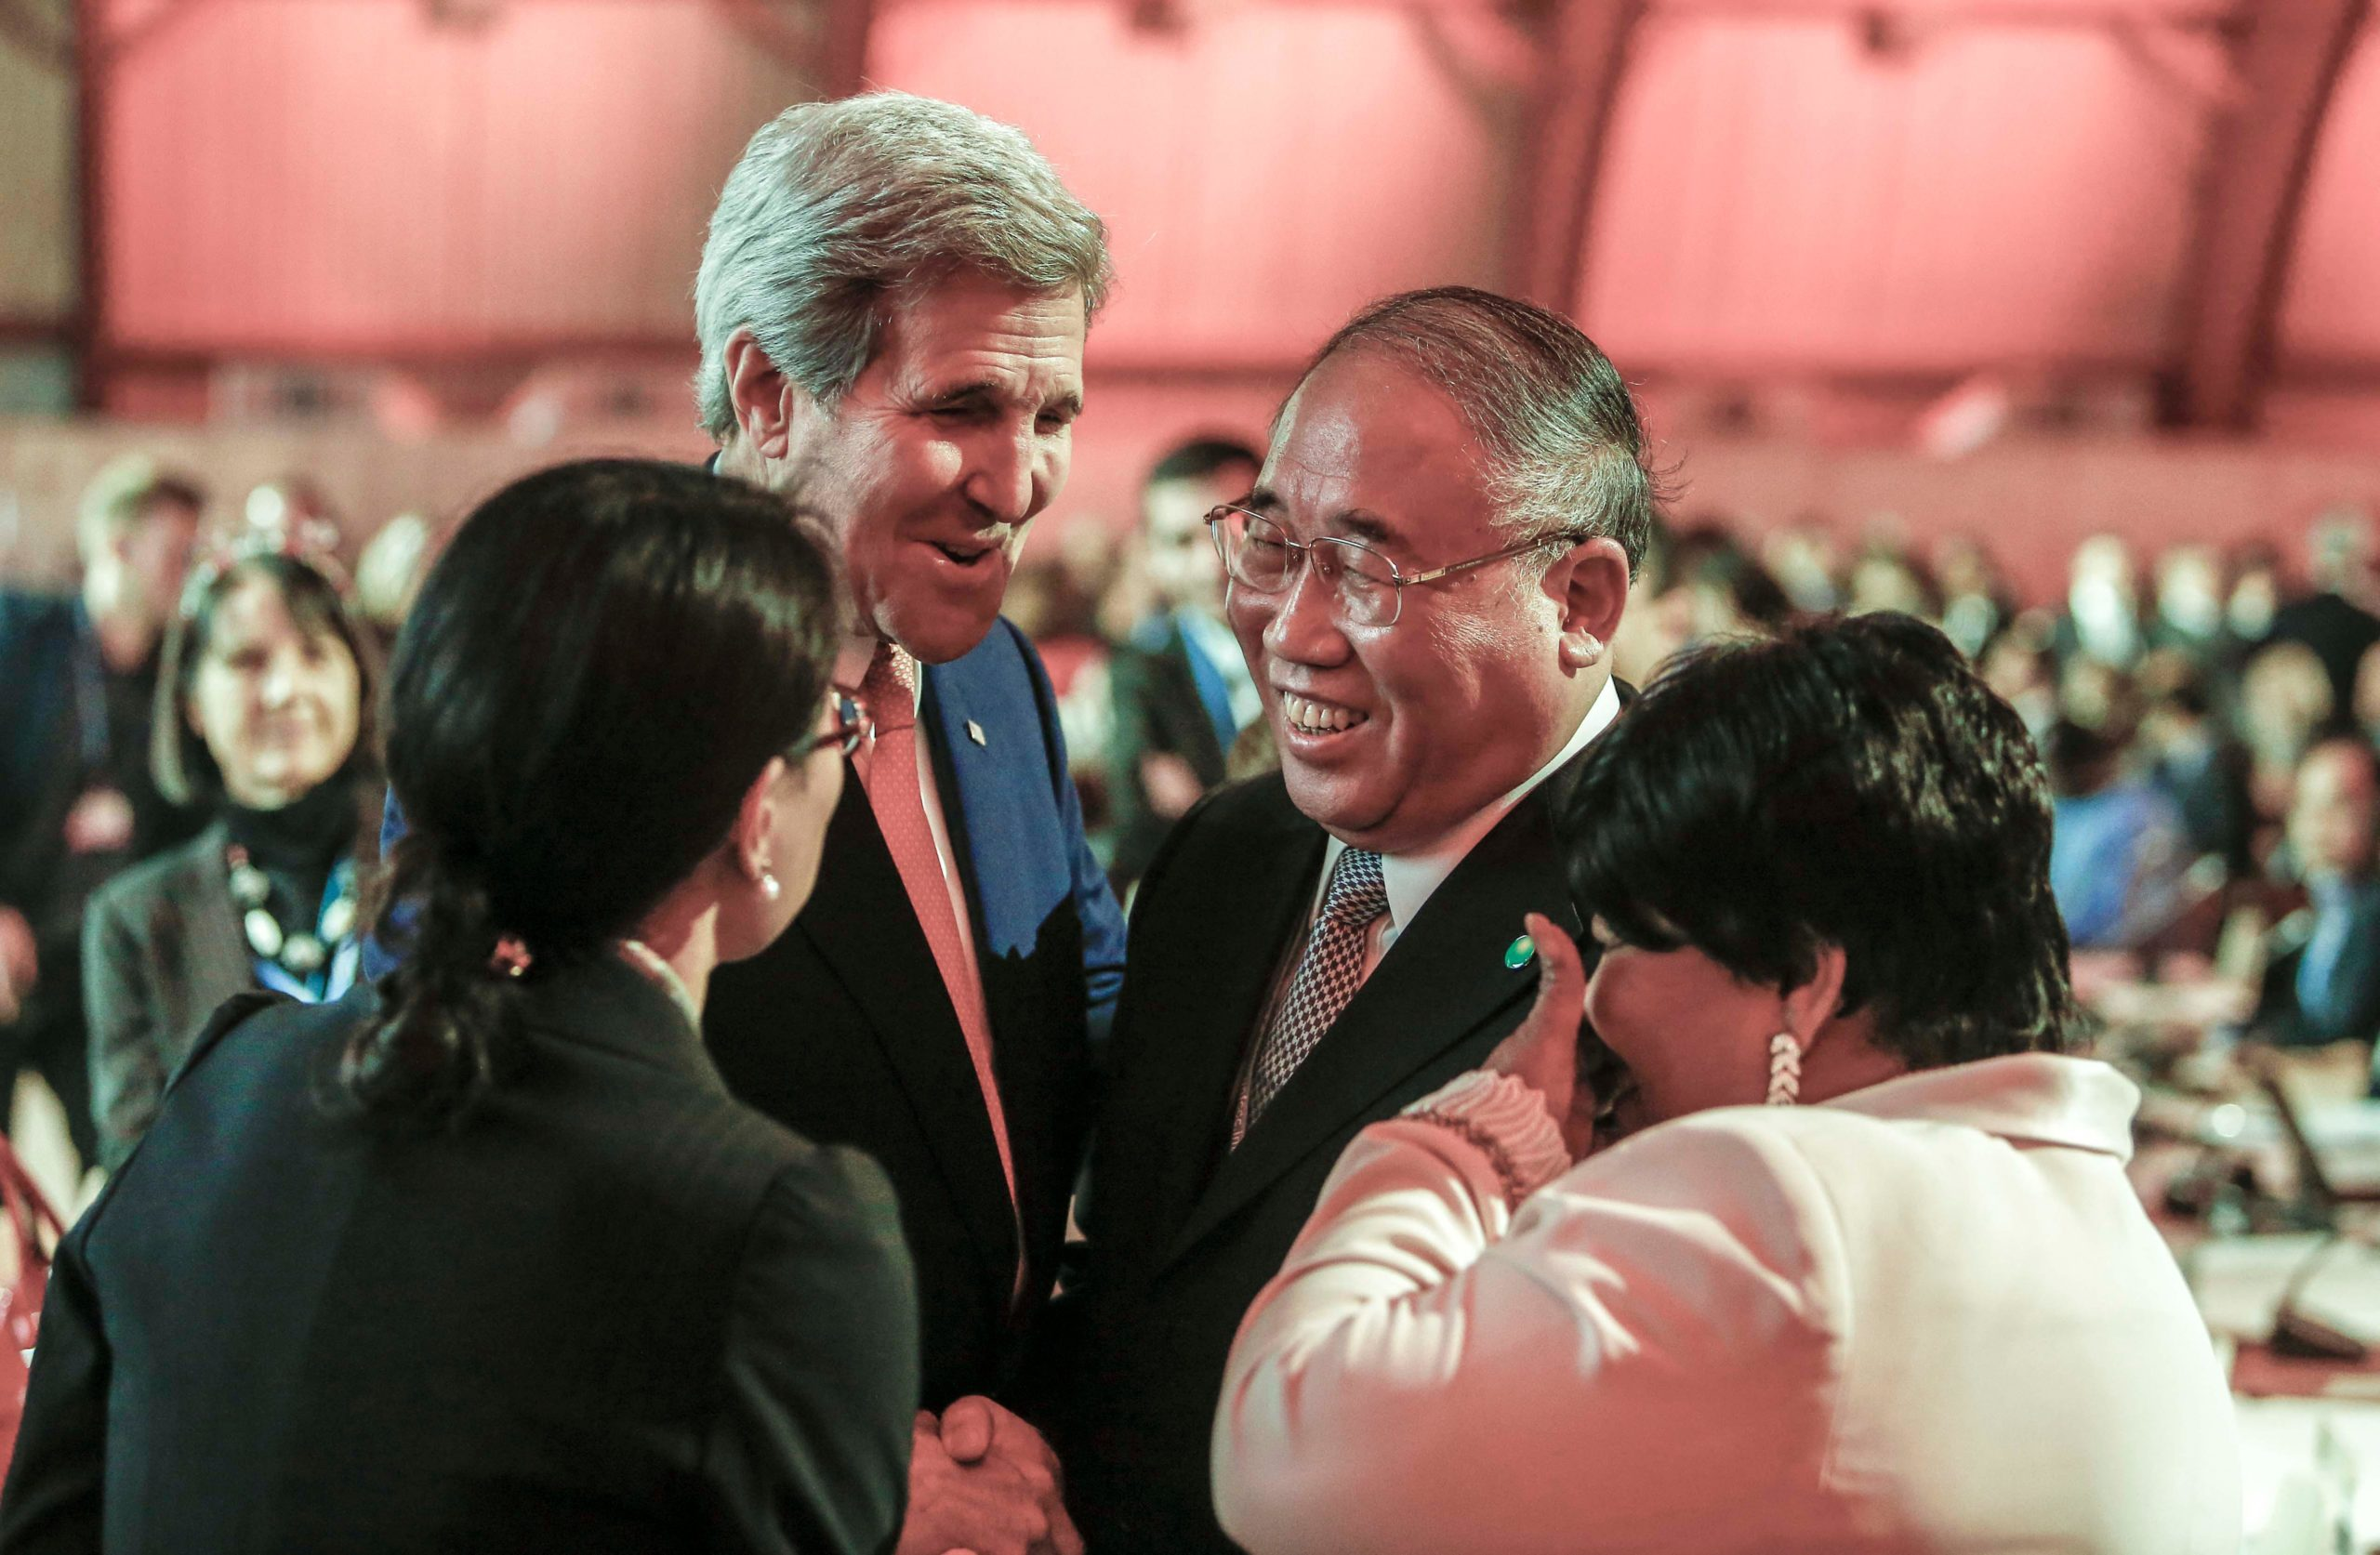 The warm relationship between John Kerry and Xie Zhenhua was essential to the adoption of the Paris Agreement in 2015 (Image: Alamy)